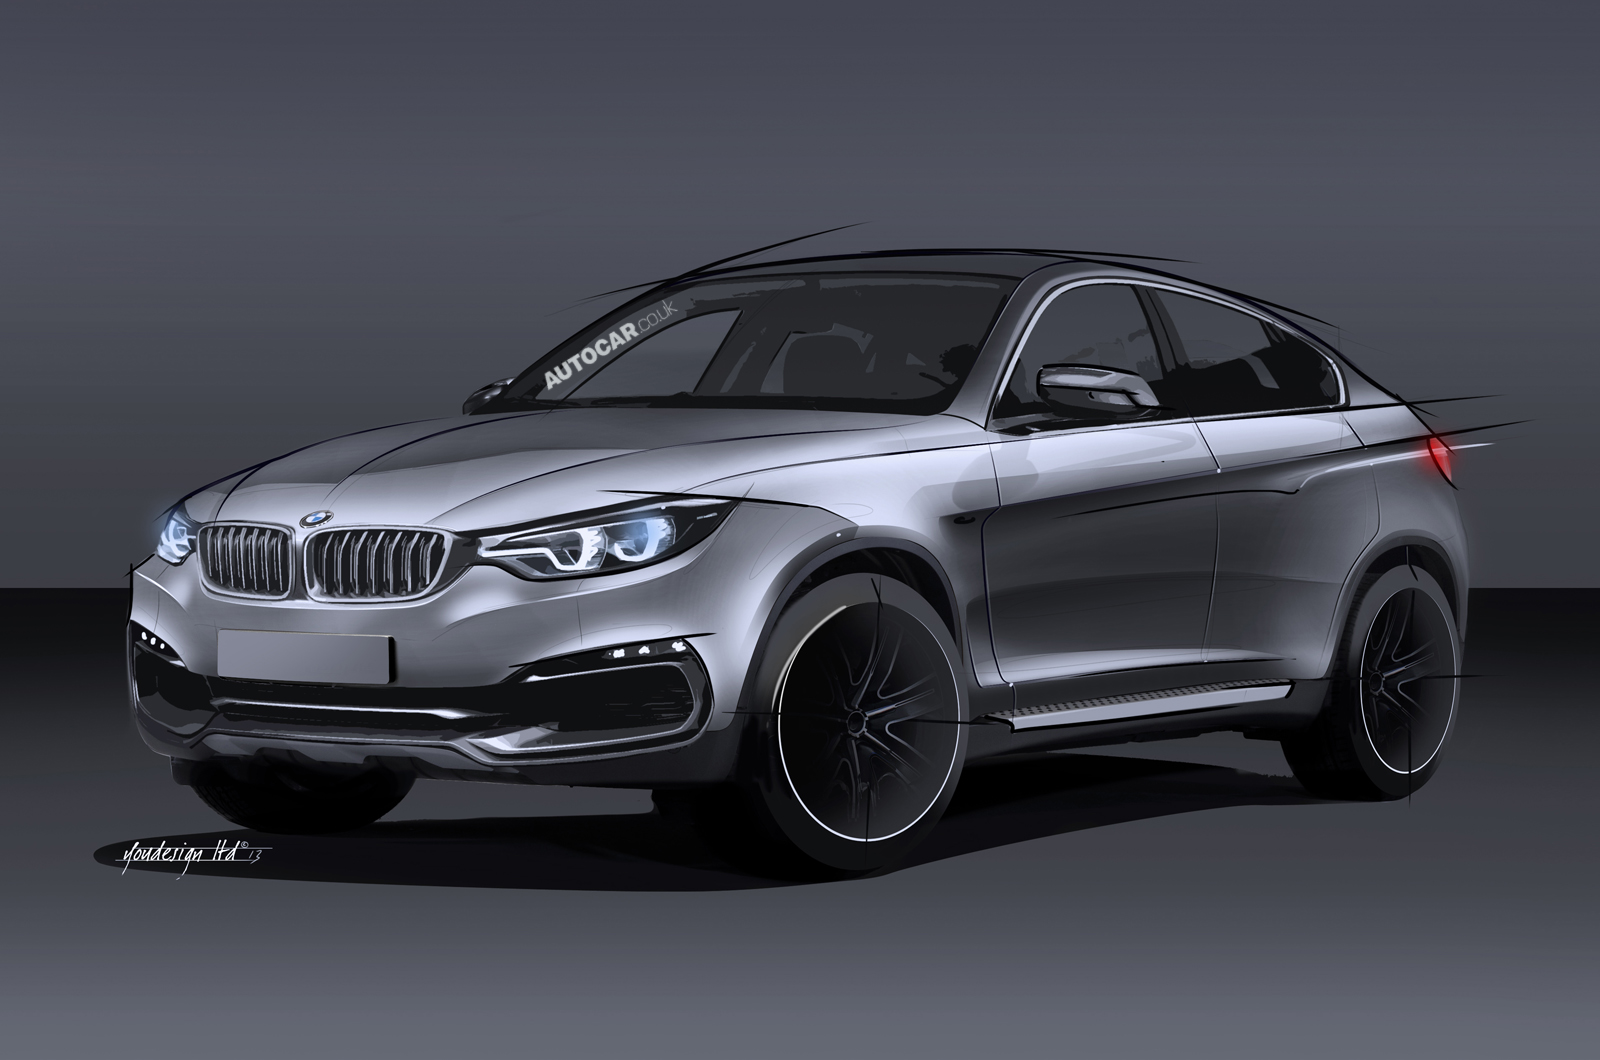 bmw x6 2014 images #13